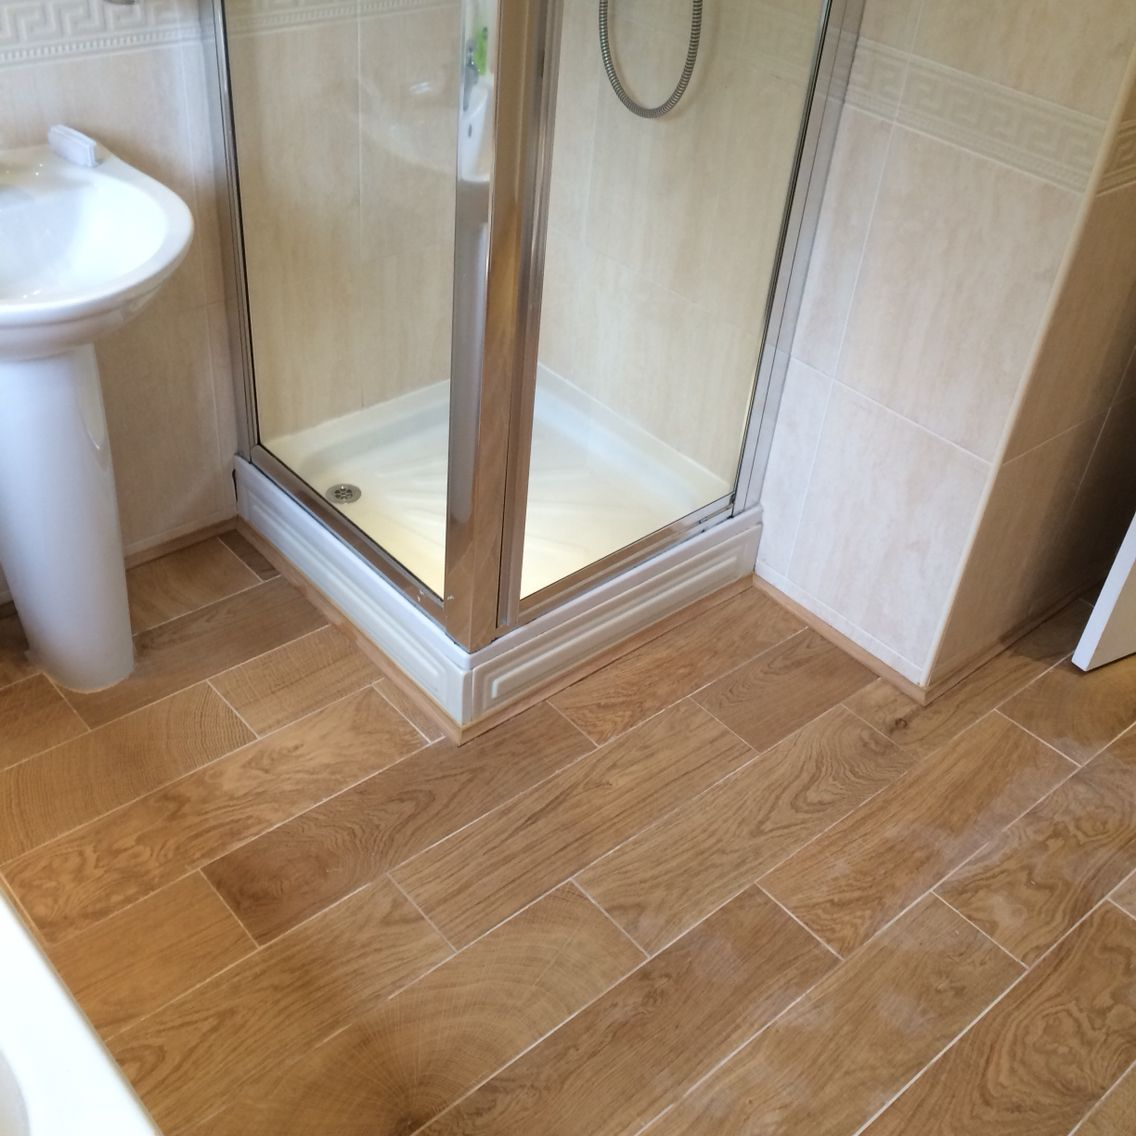 Wood look tiles finished with oak edging strip around